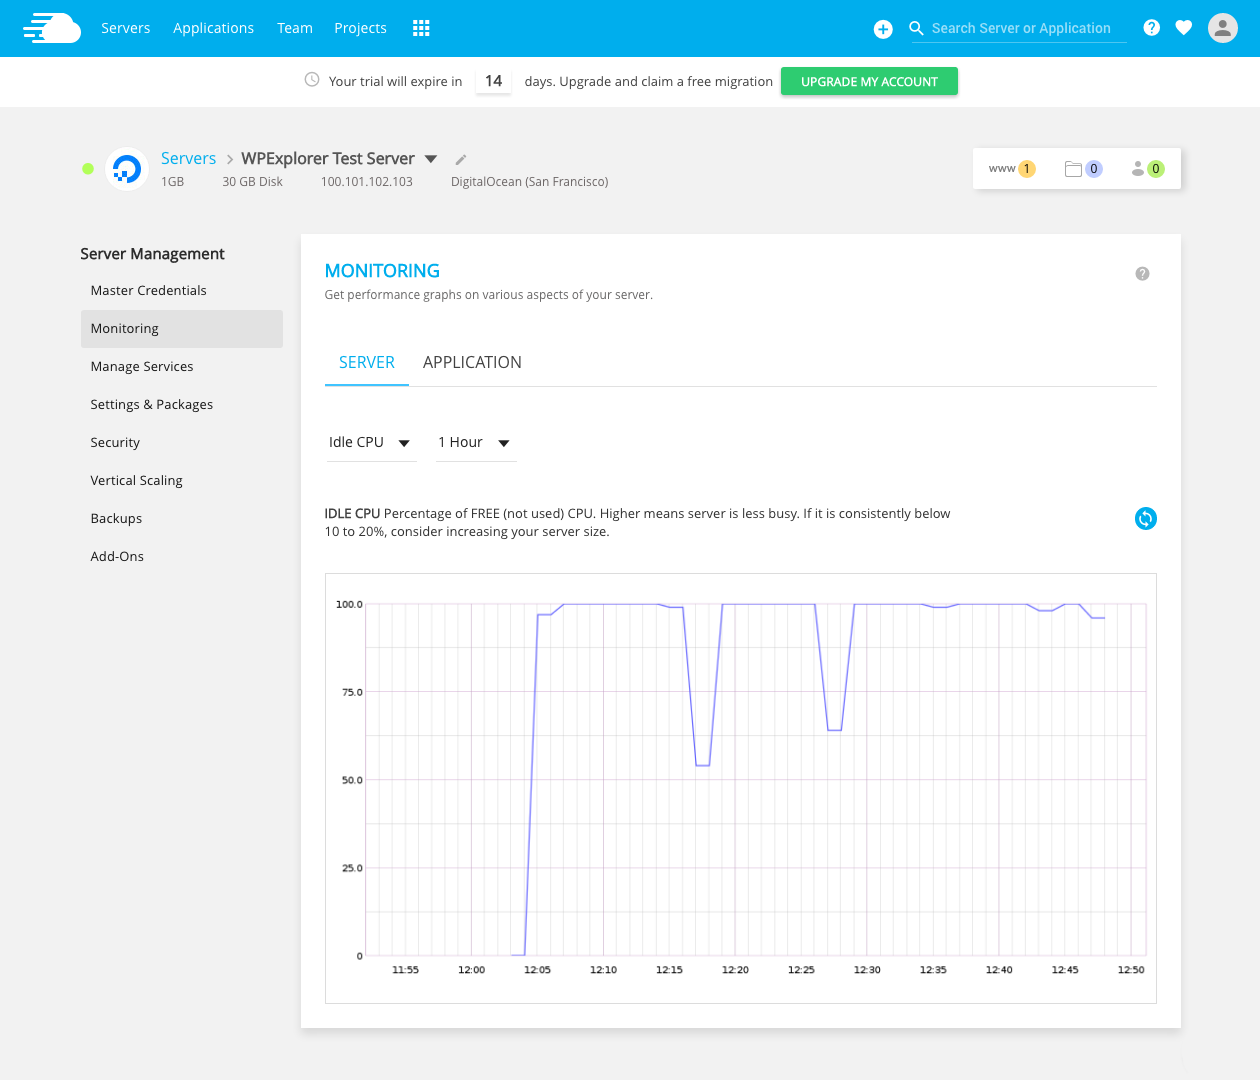 Cloudways Server Monitoring: Idle CPU